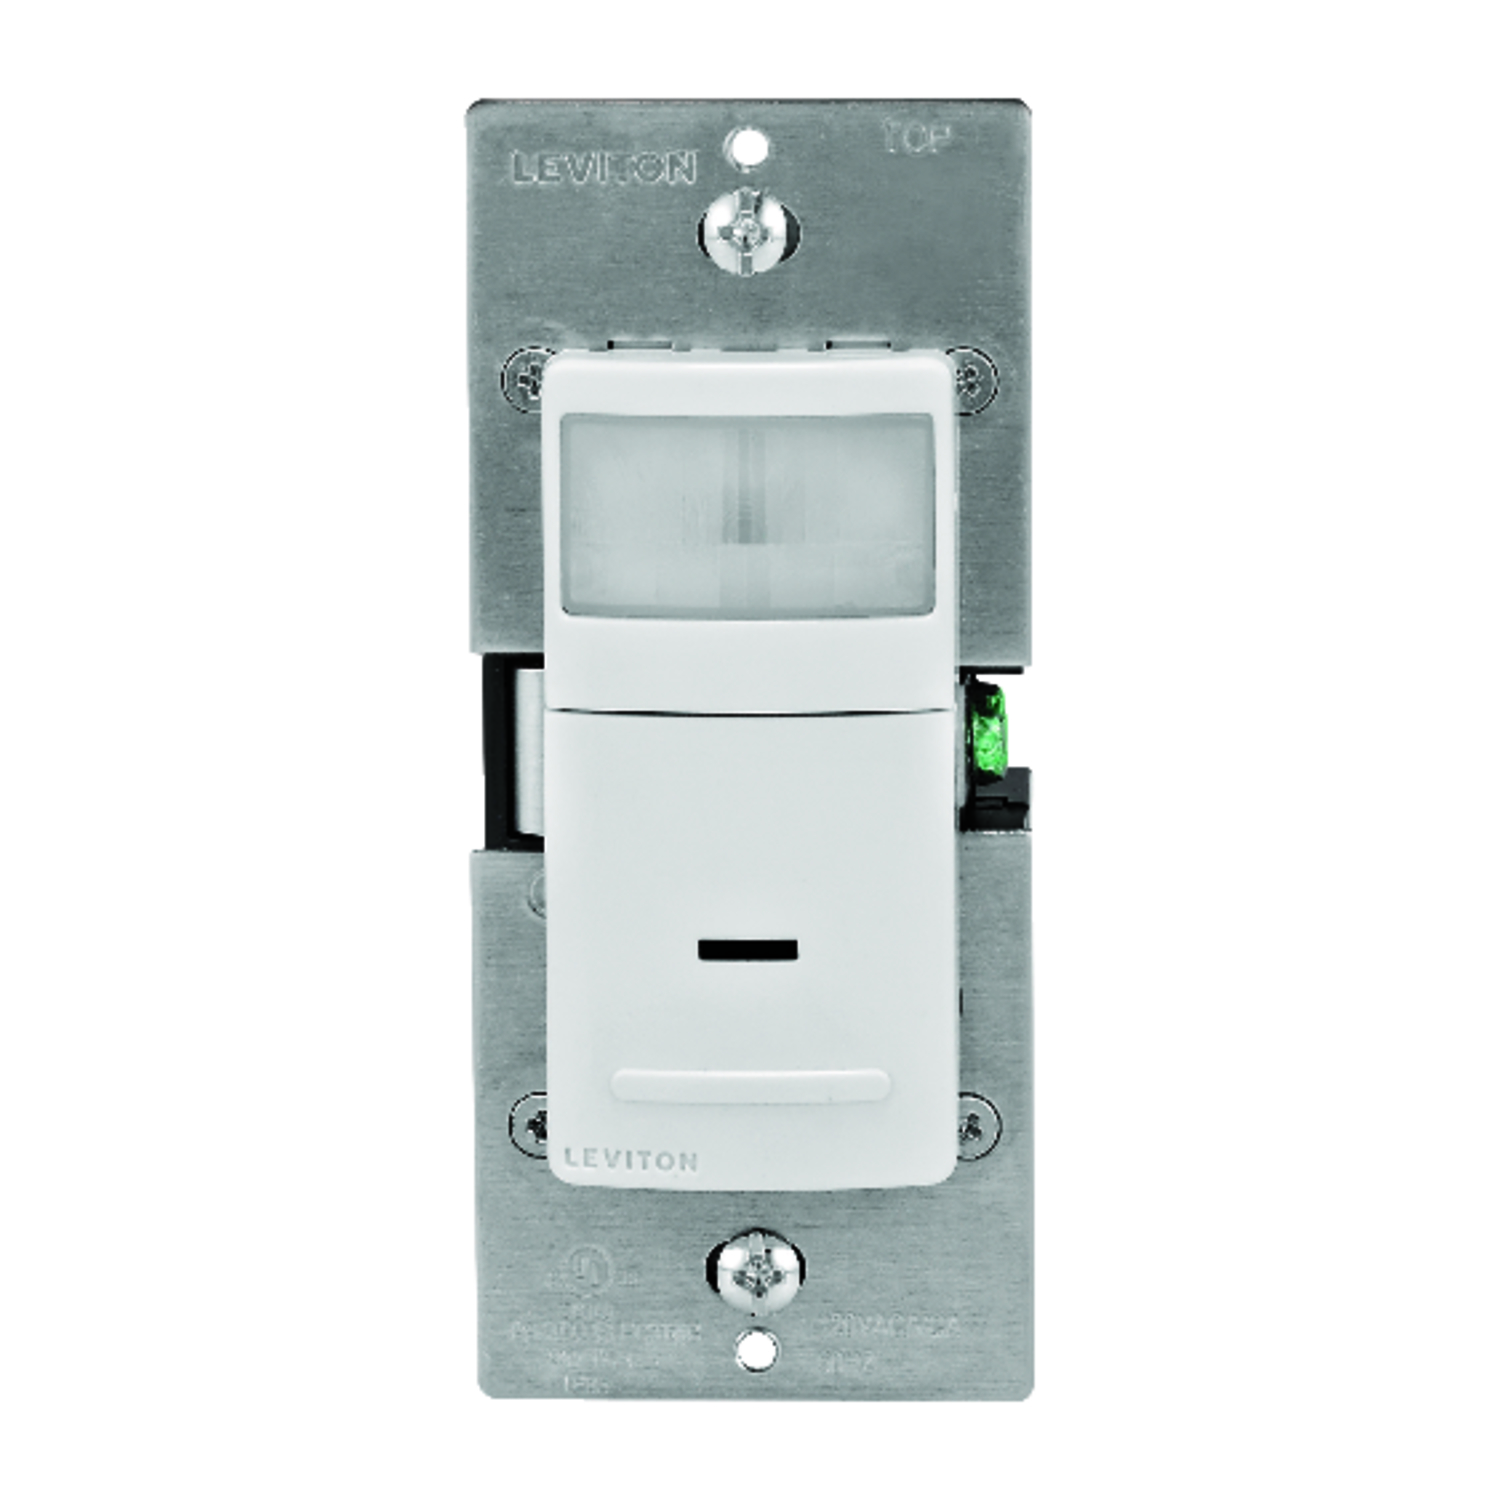 Leviton Occupancy Switch 1 pk White Motion Sensor - Ace Hardware